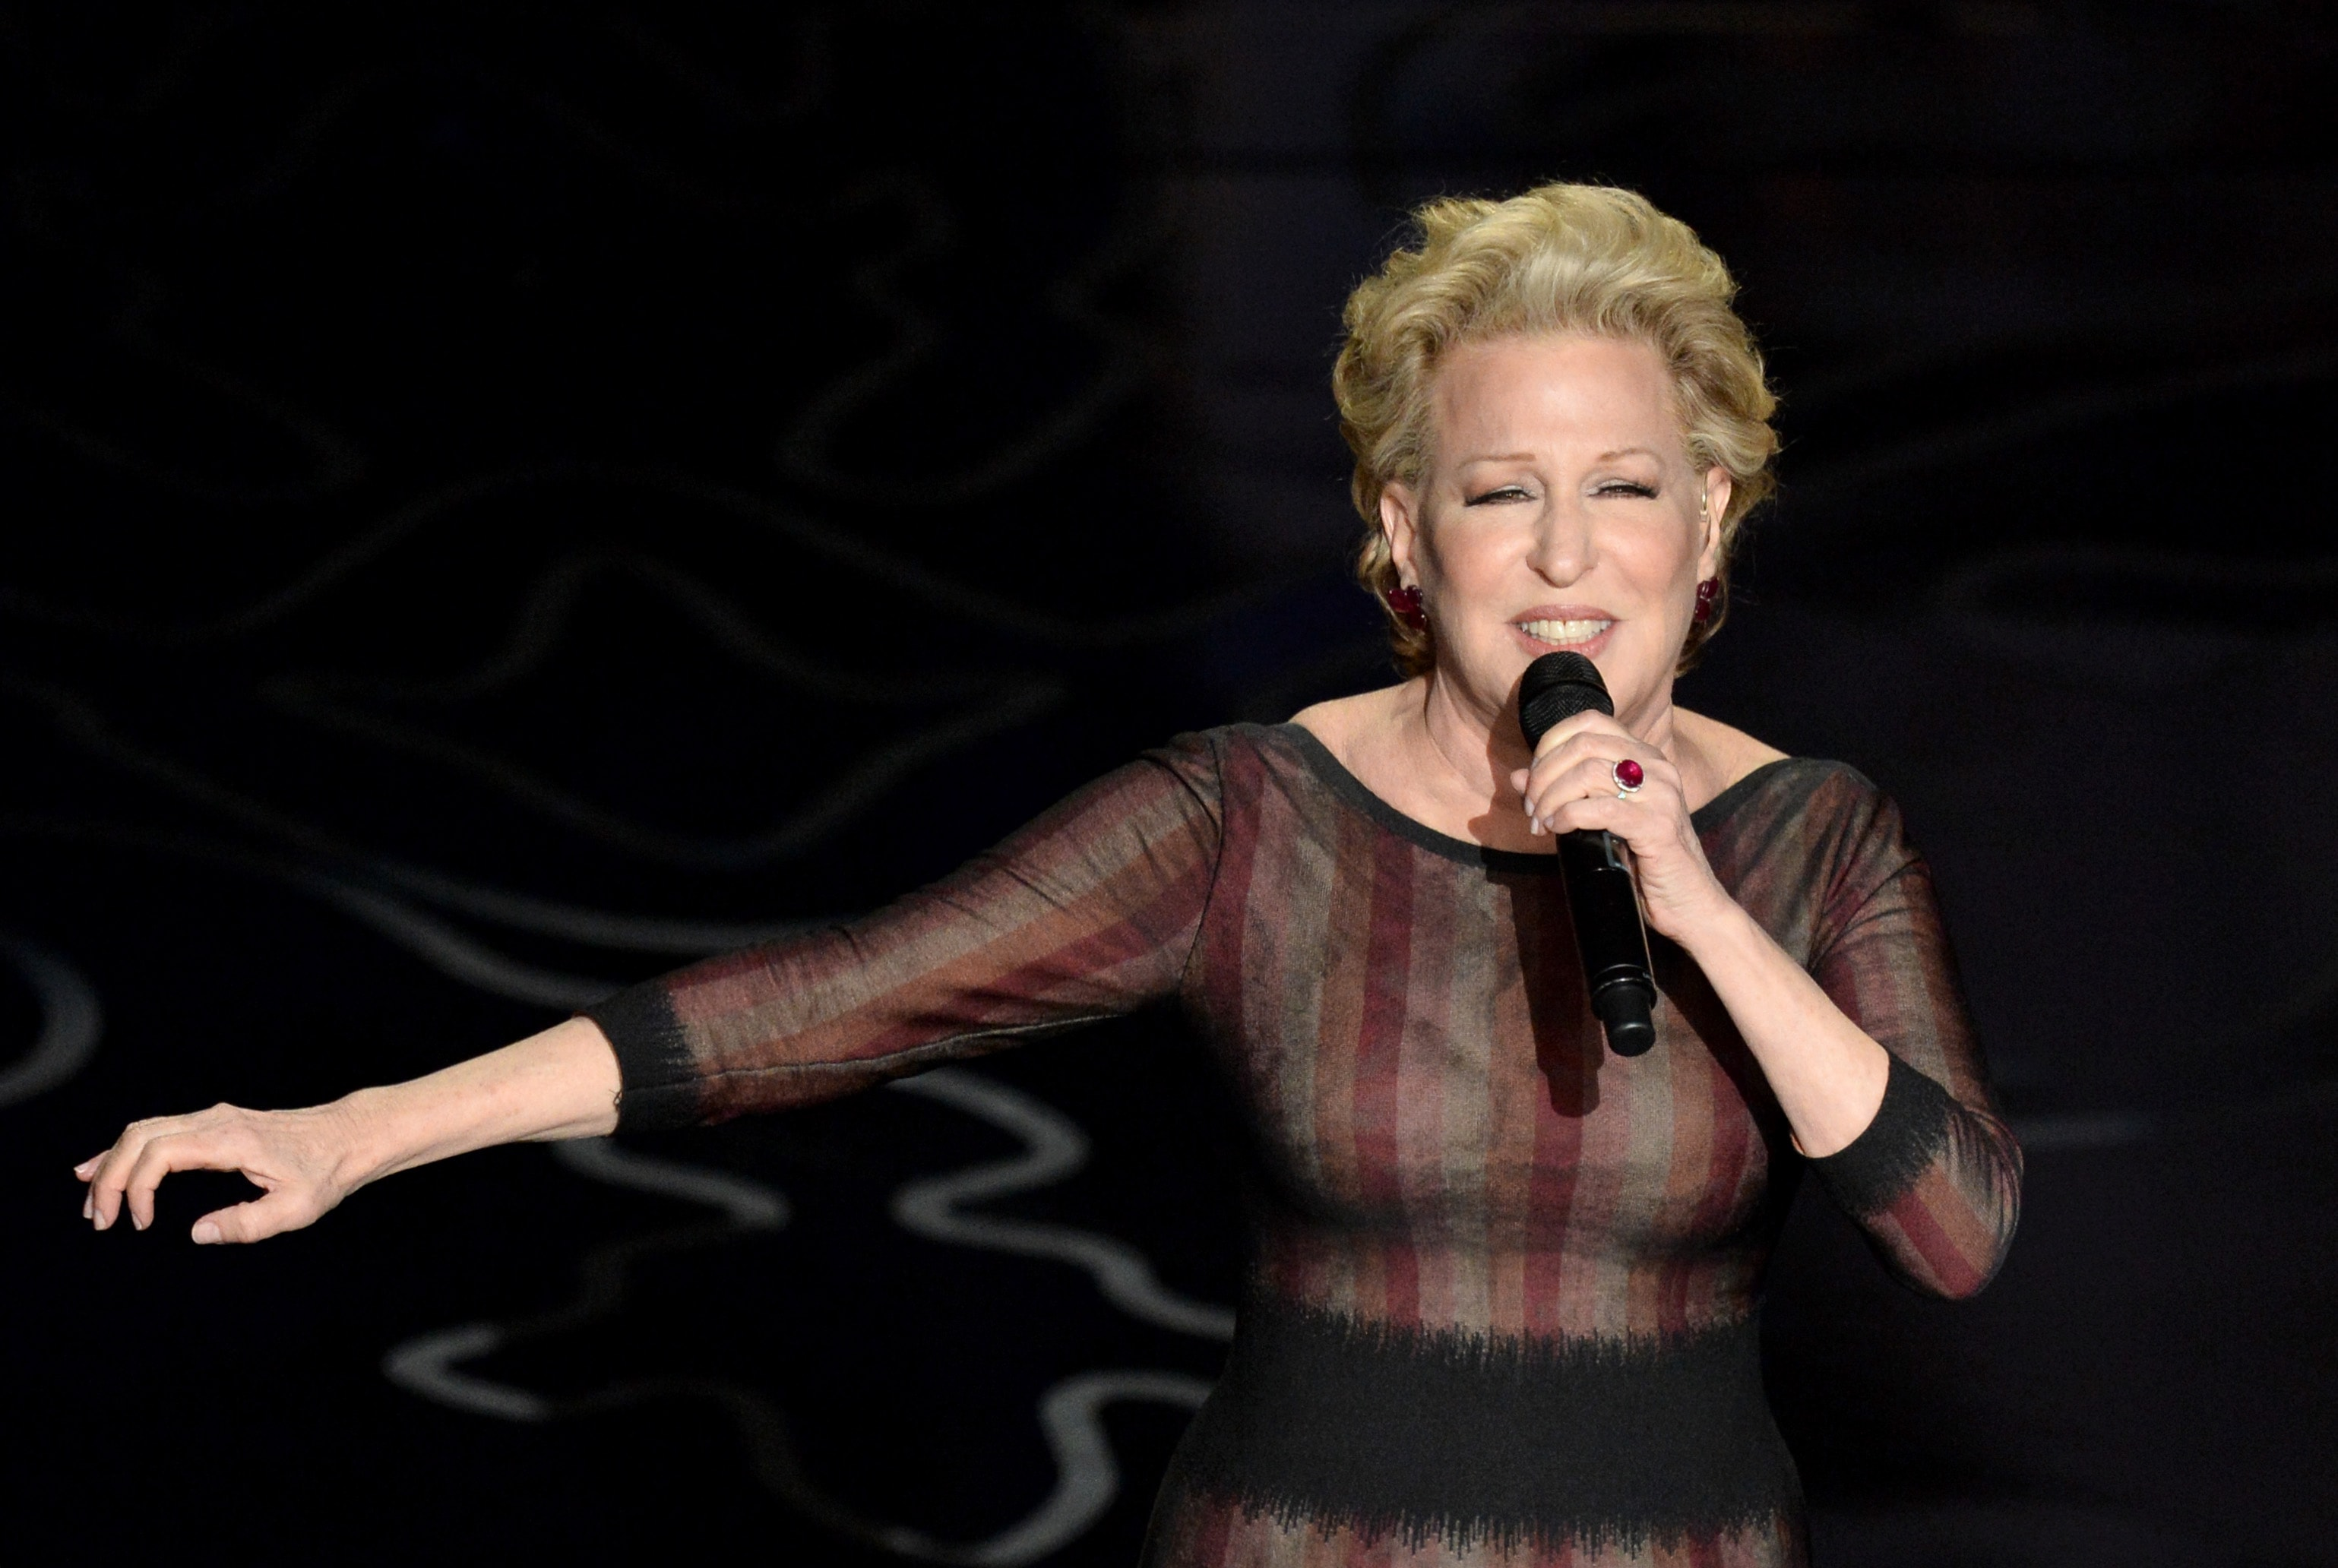 Bette Midler Backgrounds